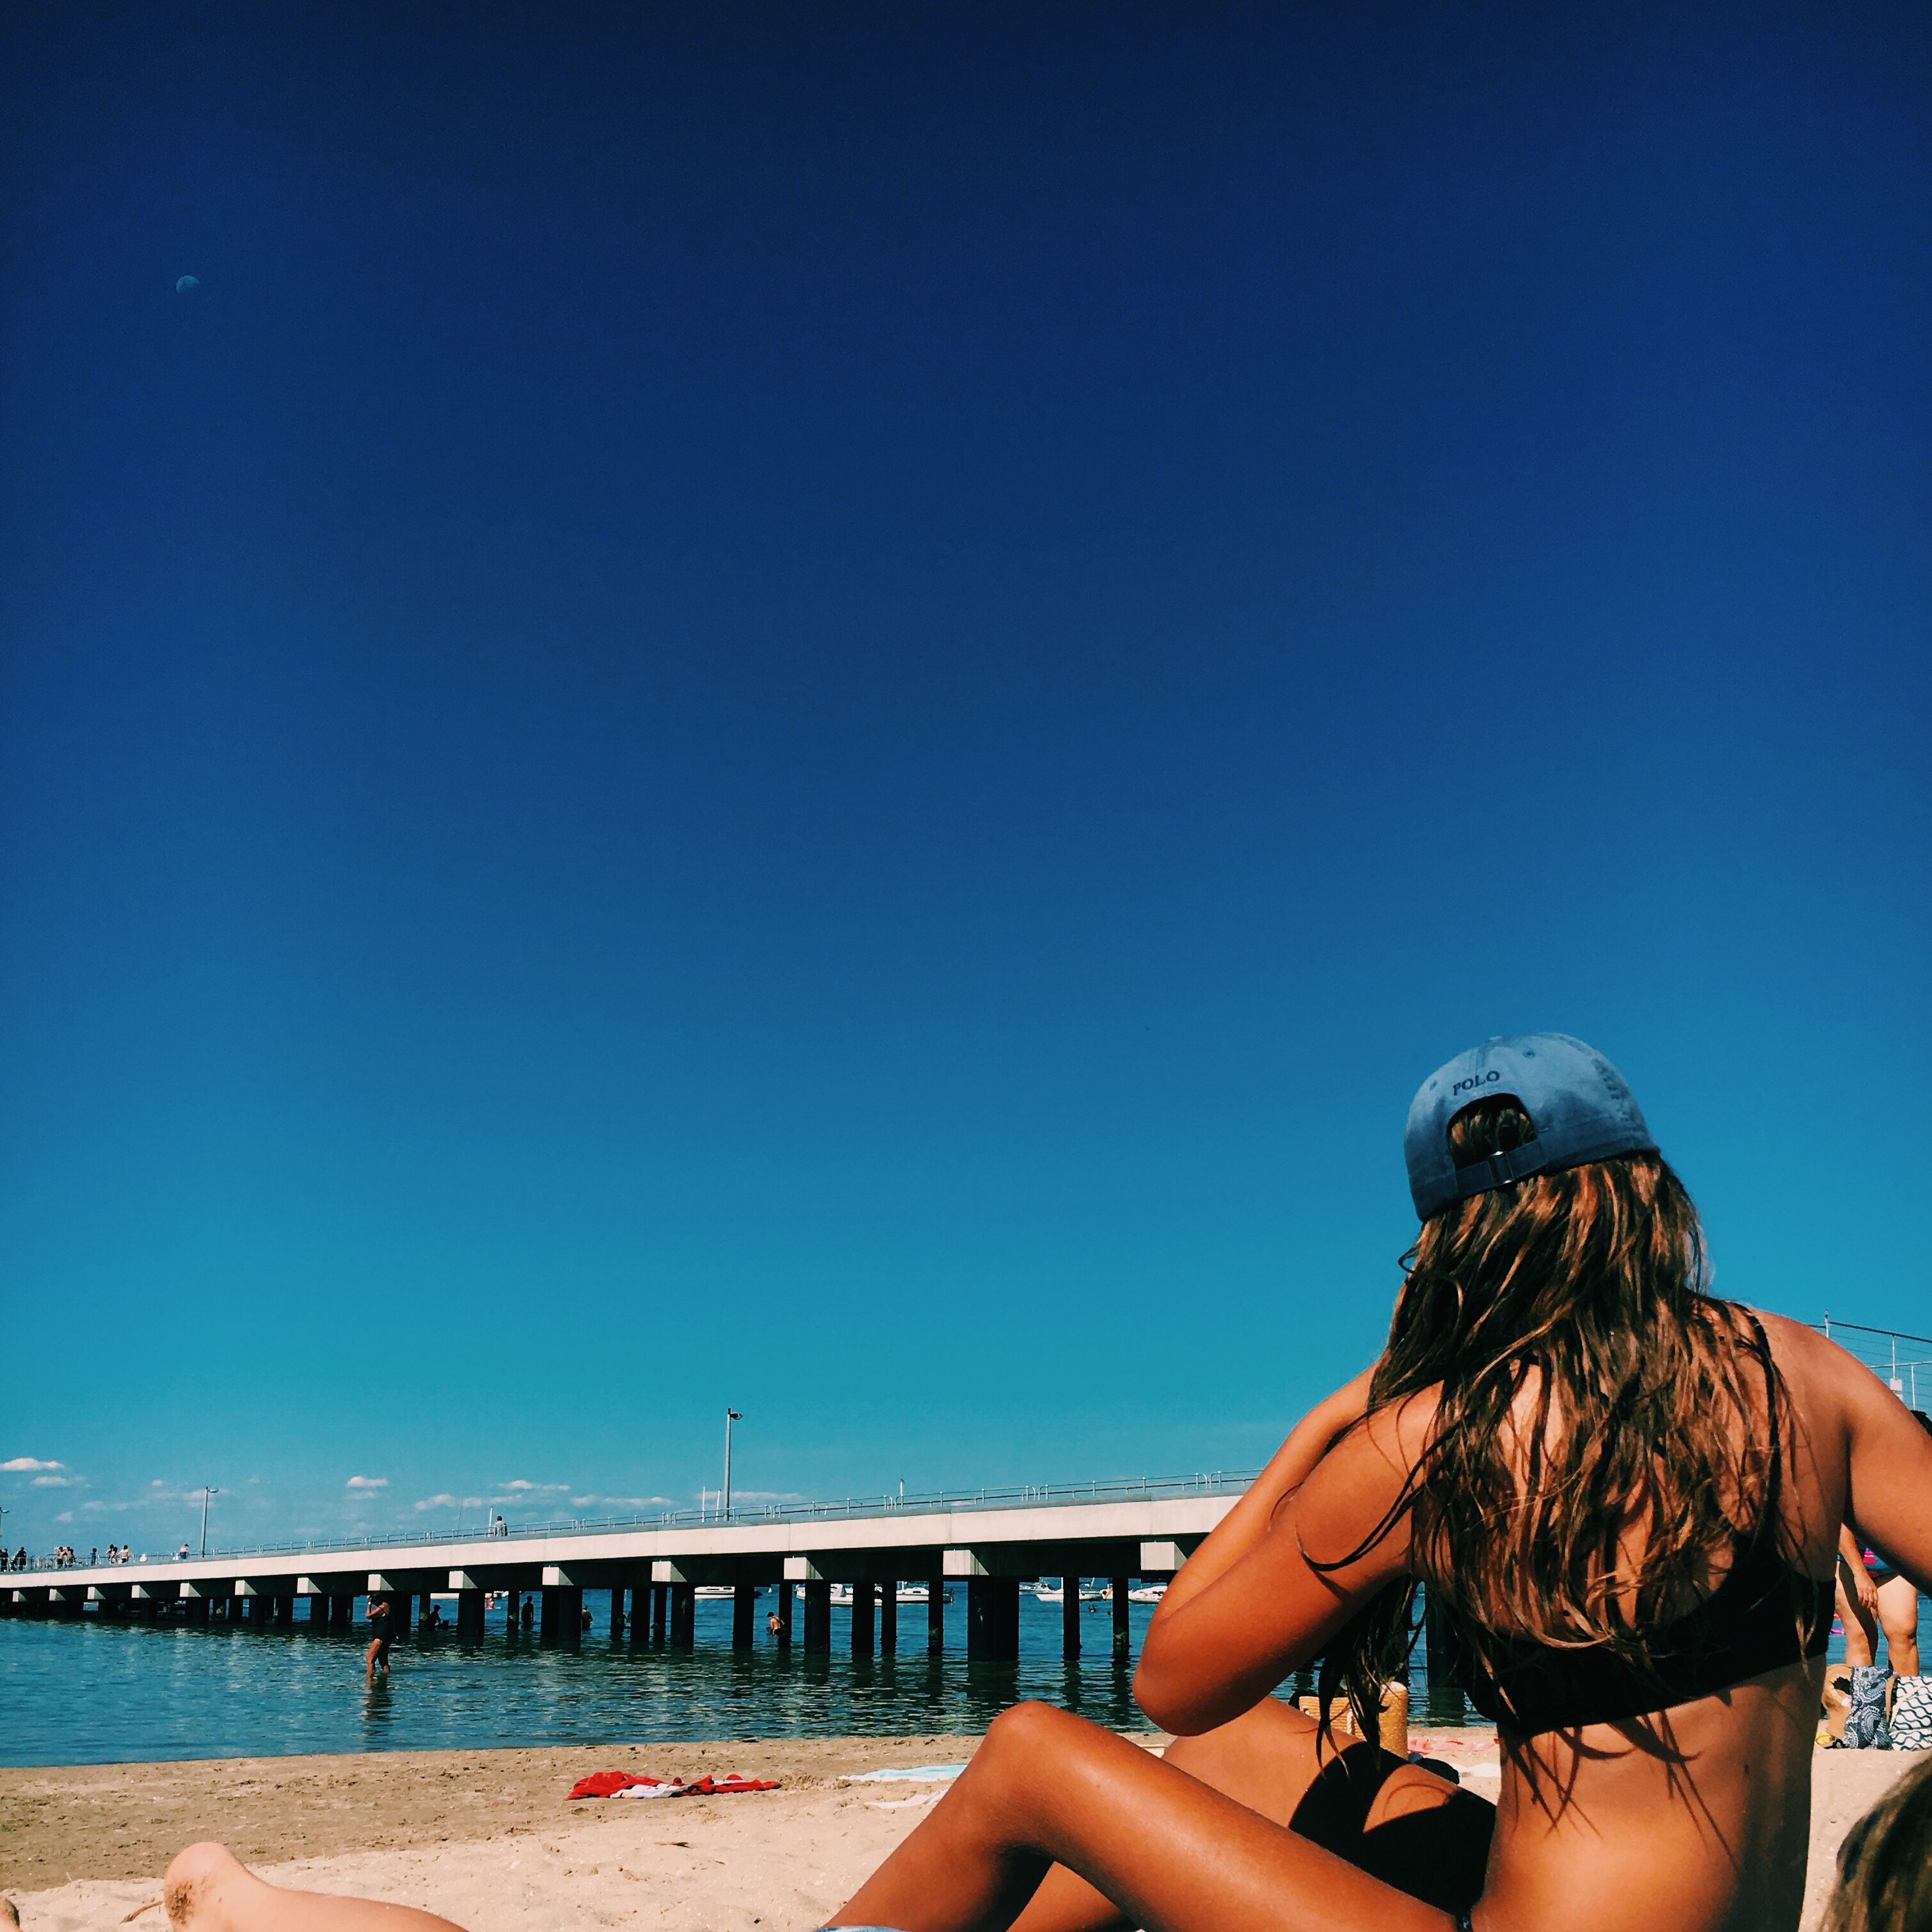 clear sky, blue, sea, copy space, water, lifestyles, leisure activity, beach, rear view, person, relaxation, young adult, vacations, horizon over water, sitting, shore, casual clothing, sunlight